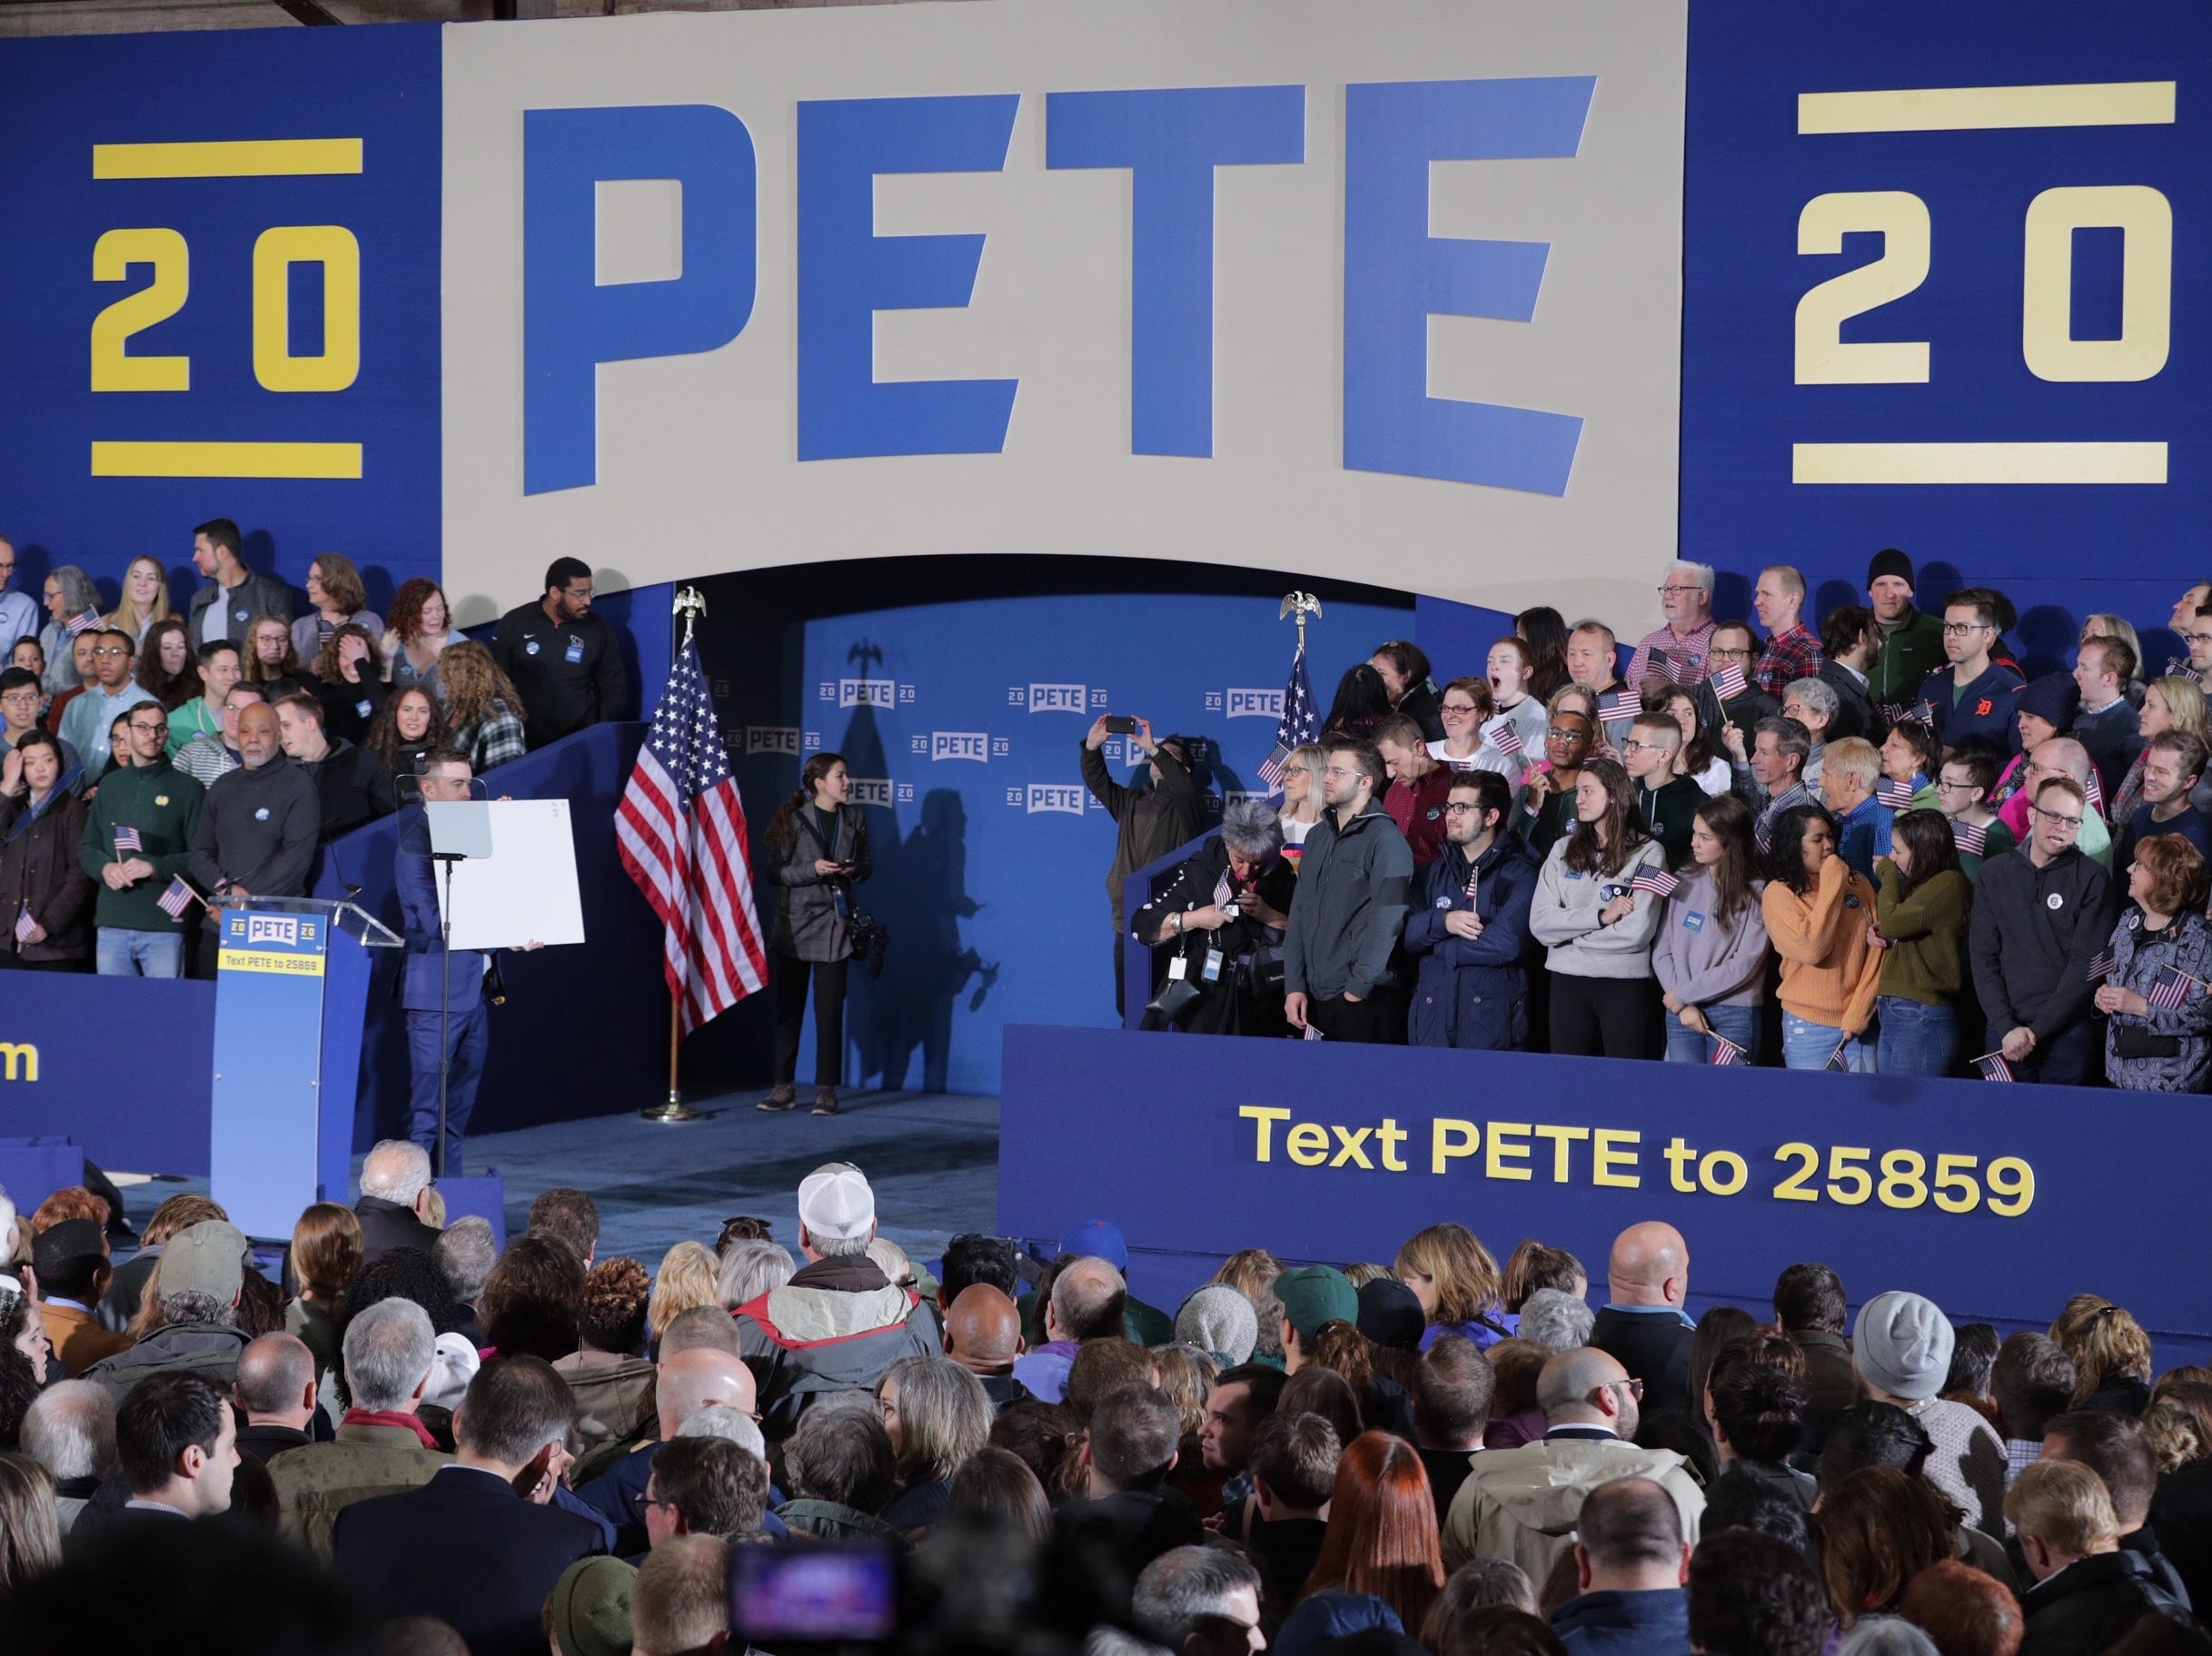 South Bend Mayor Pete Buttigieg announced that he's officially running for president, topping off a week of heightened media attention.